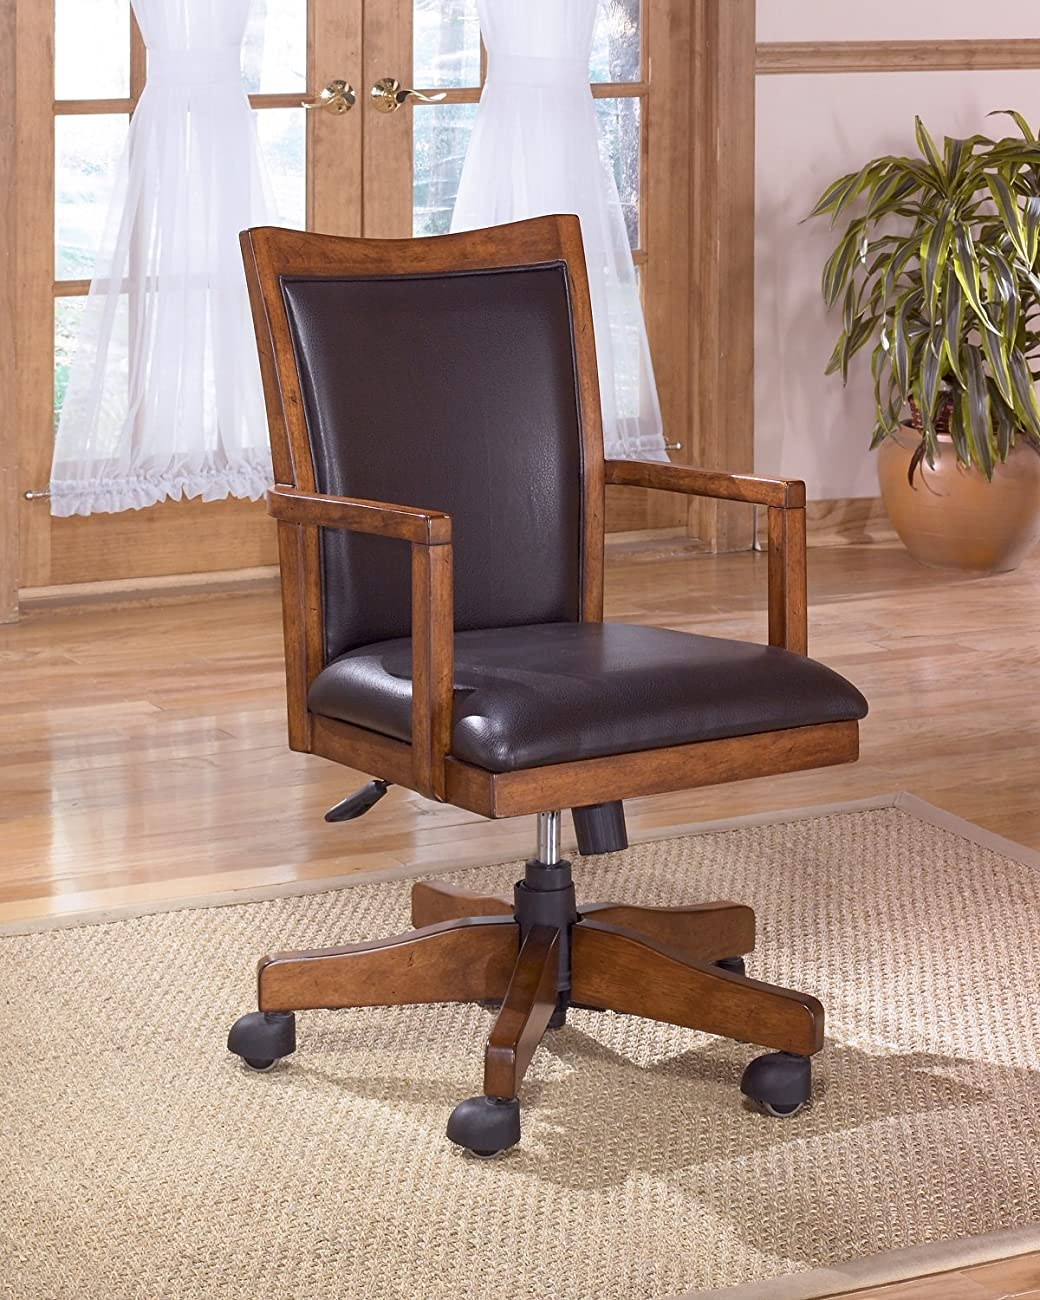 Crossingland Medium Brown Luxurious Home Office Swivel Desk Chair 0